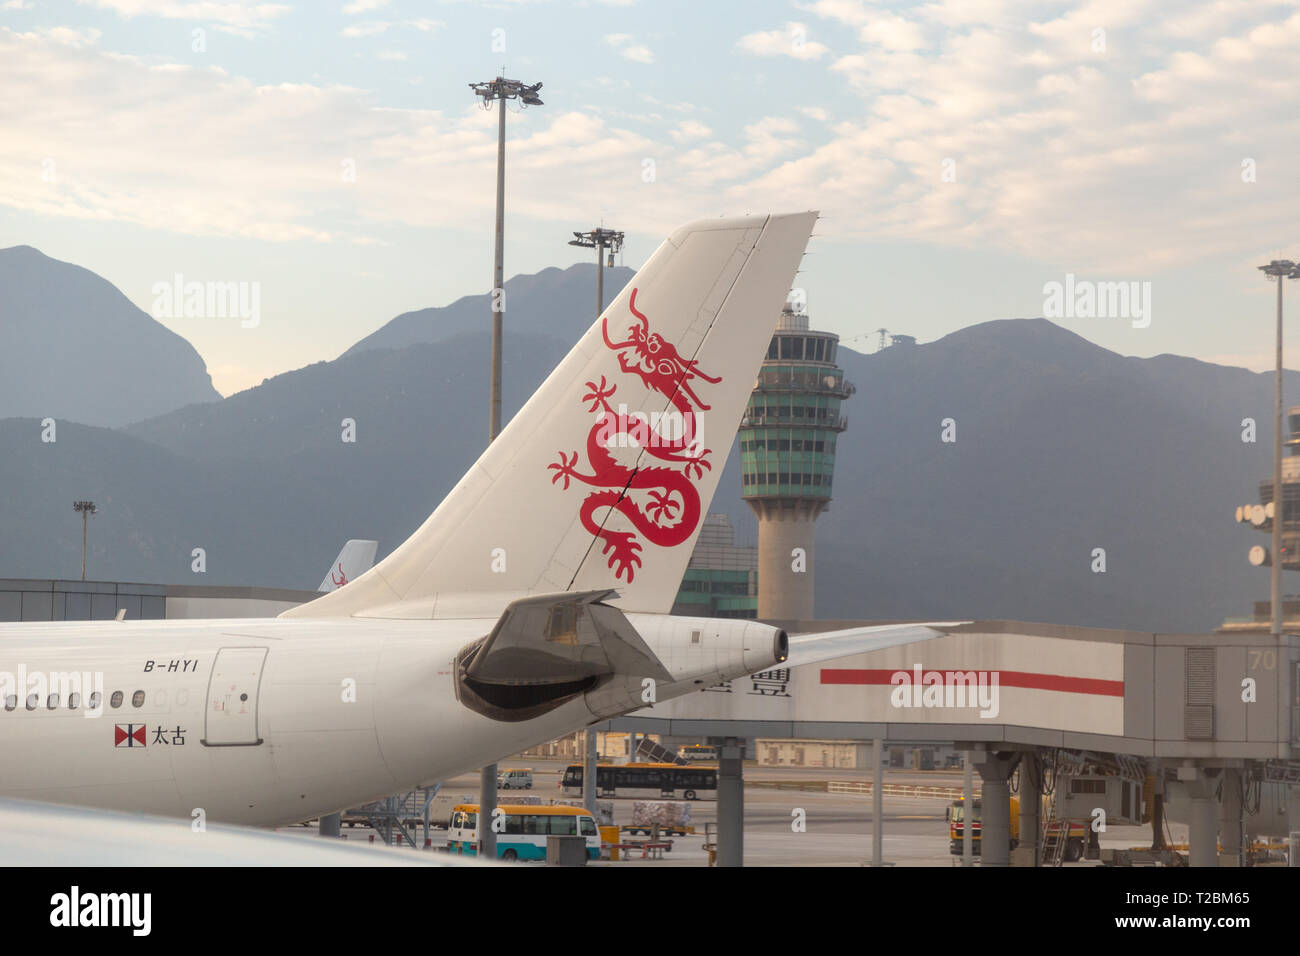 Cathay Dragon (Dragon Air's) docked in the airport with air traffic control tower in the background - Stock Image